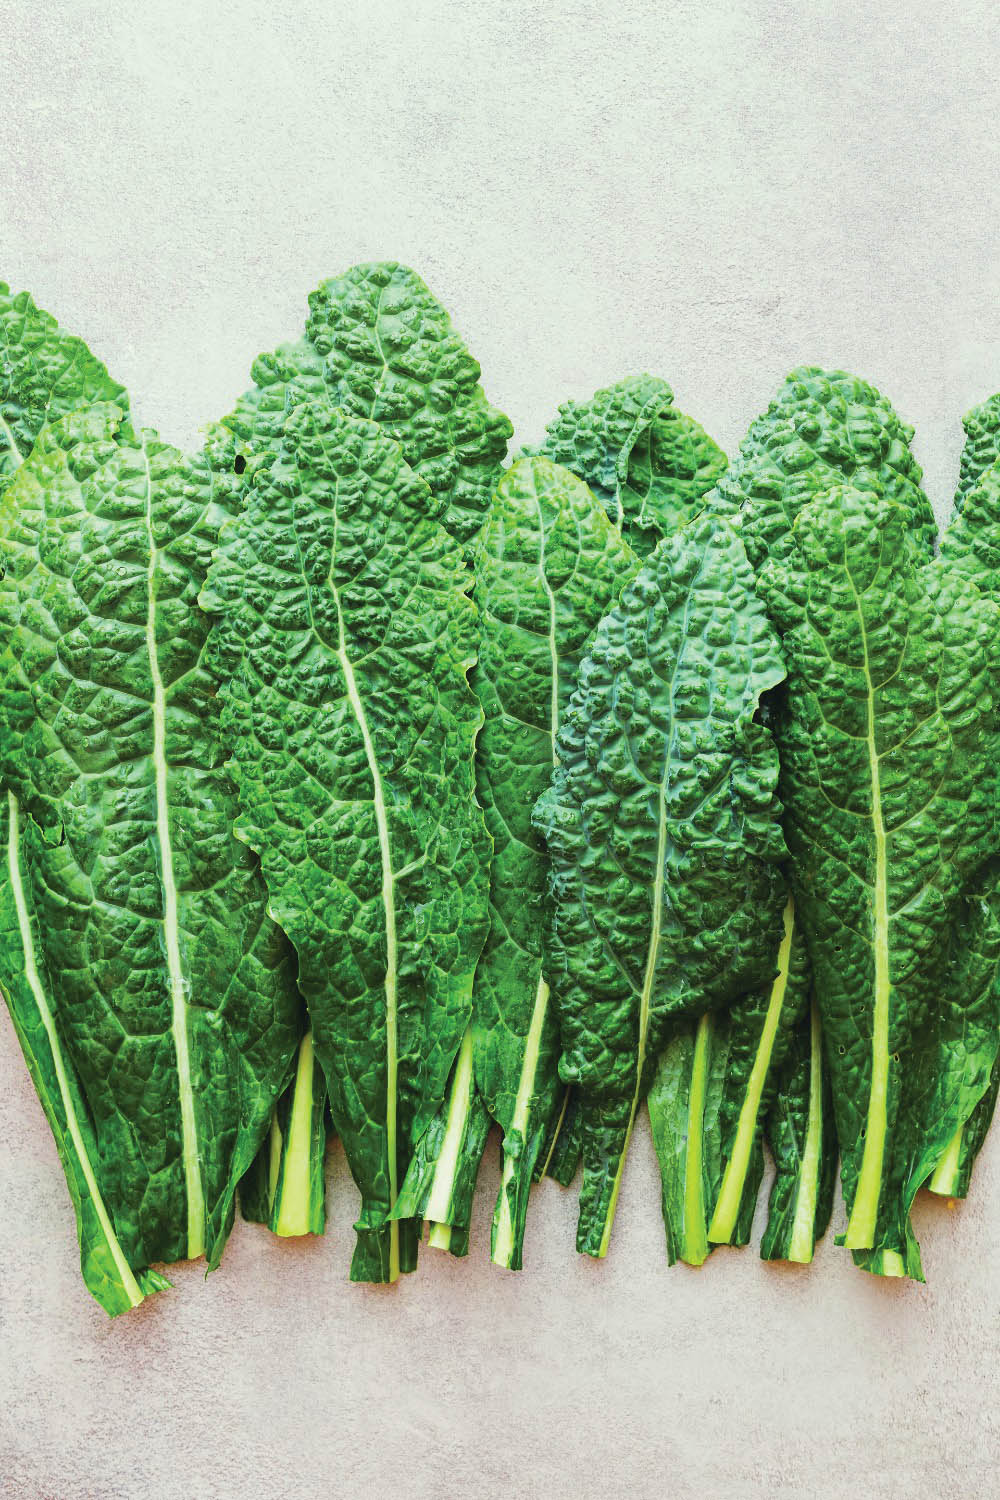 All Hail Kale: Good Organic Gardening - Cavolo Nero - a popular variety